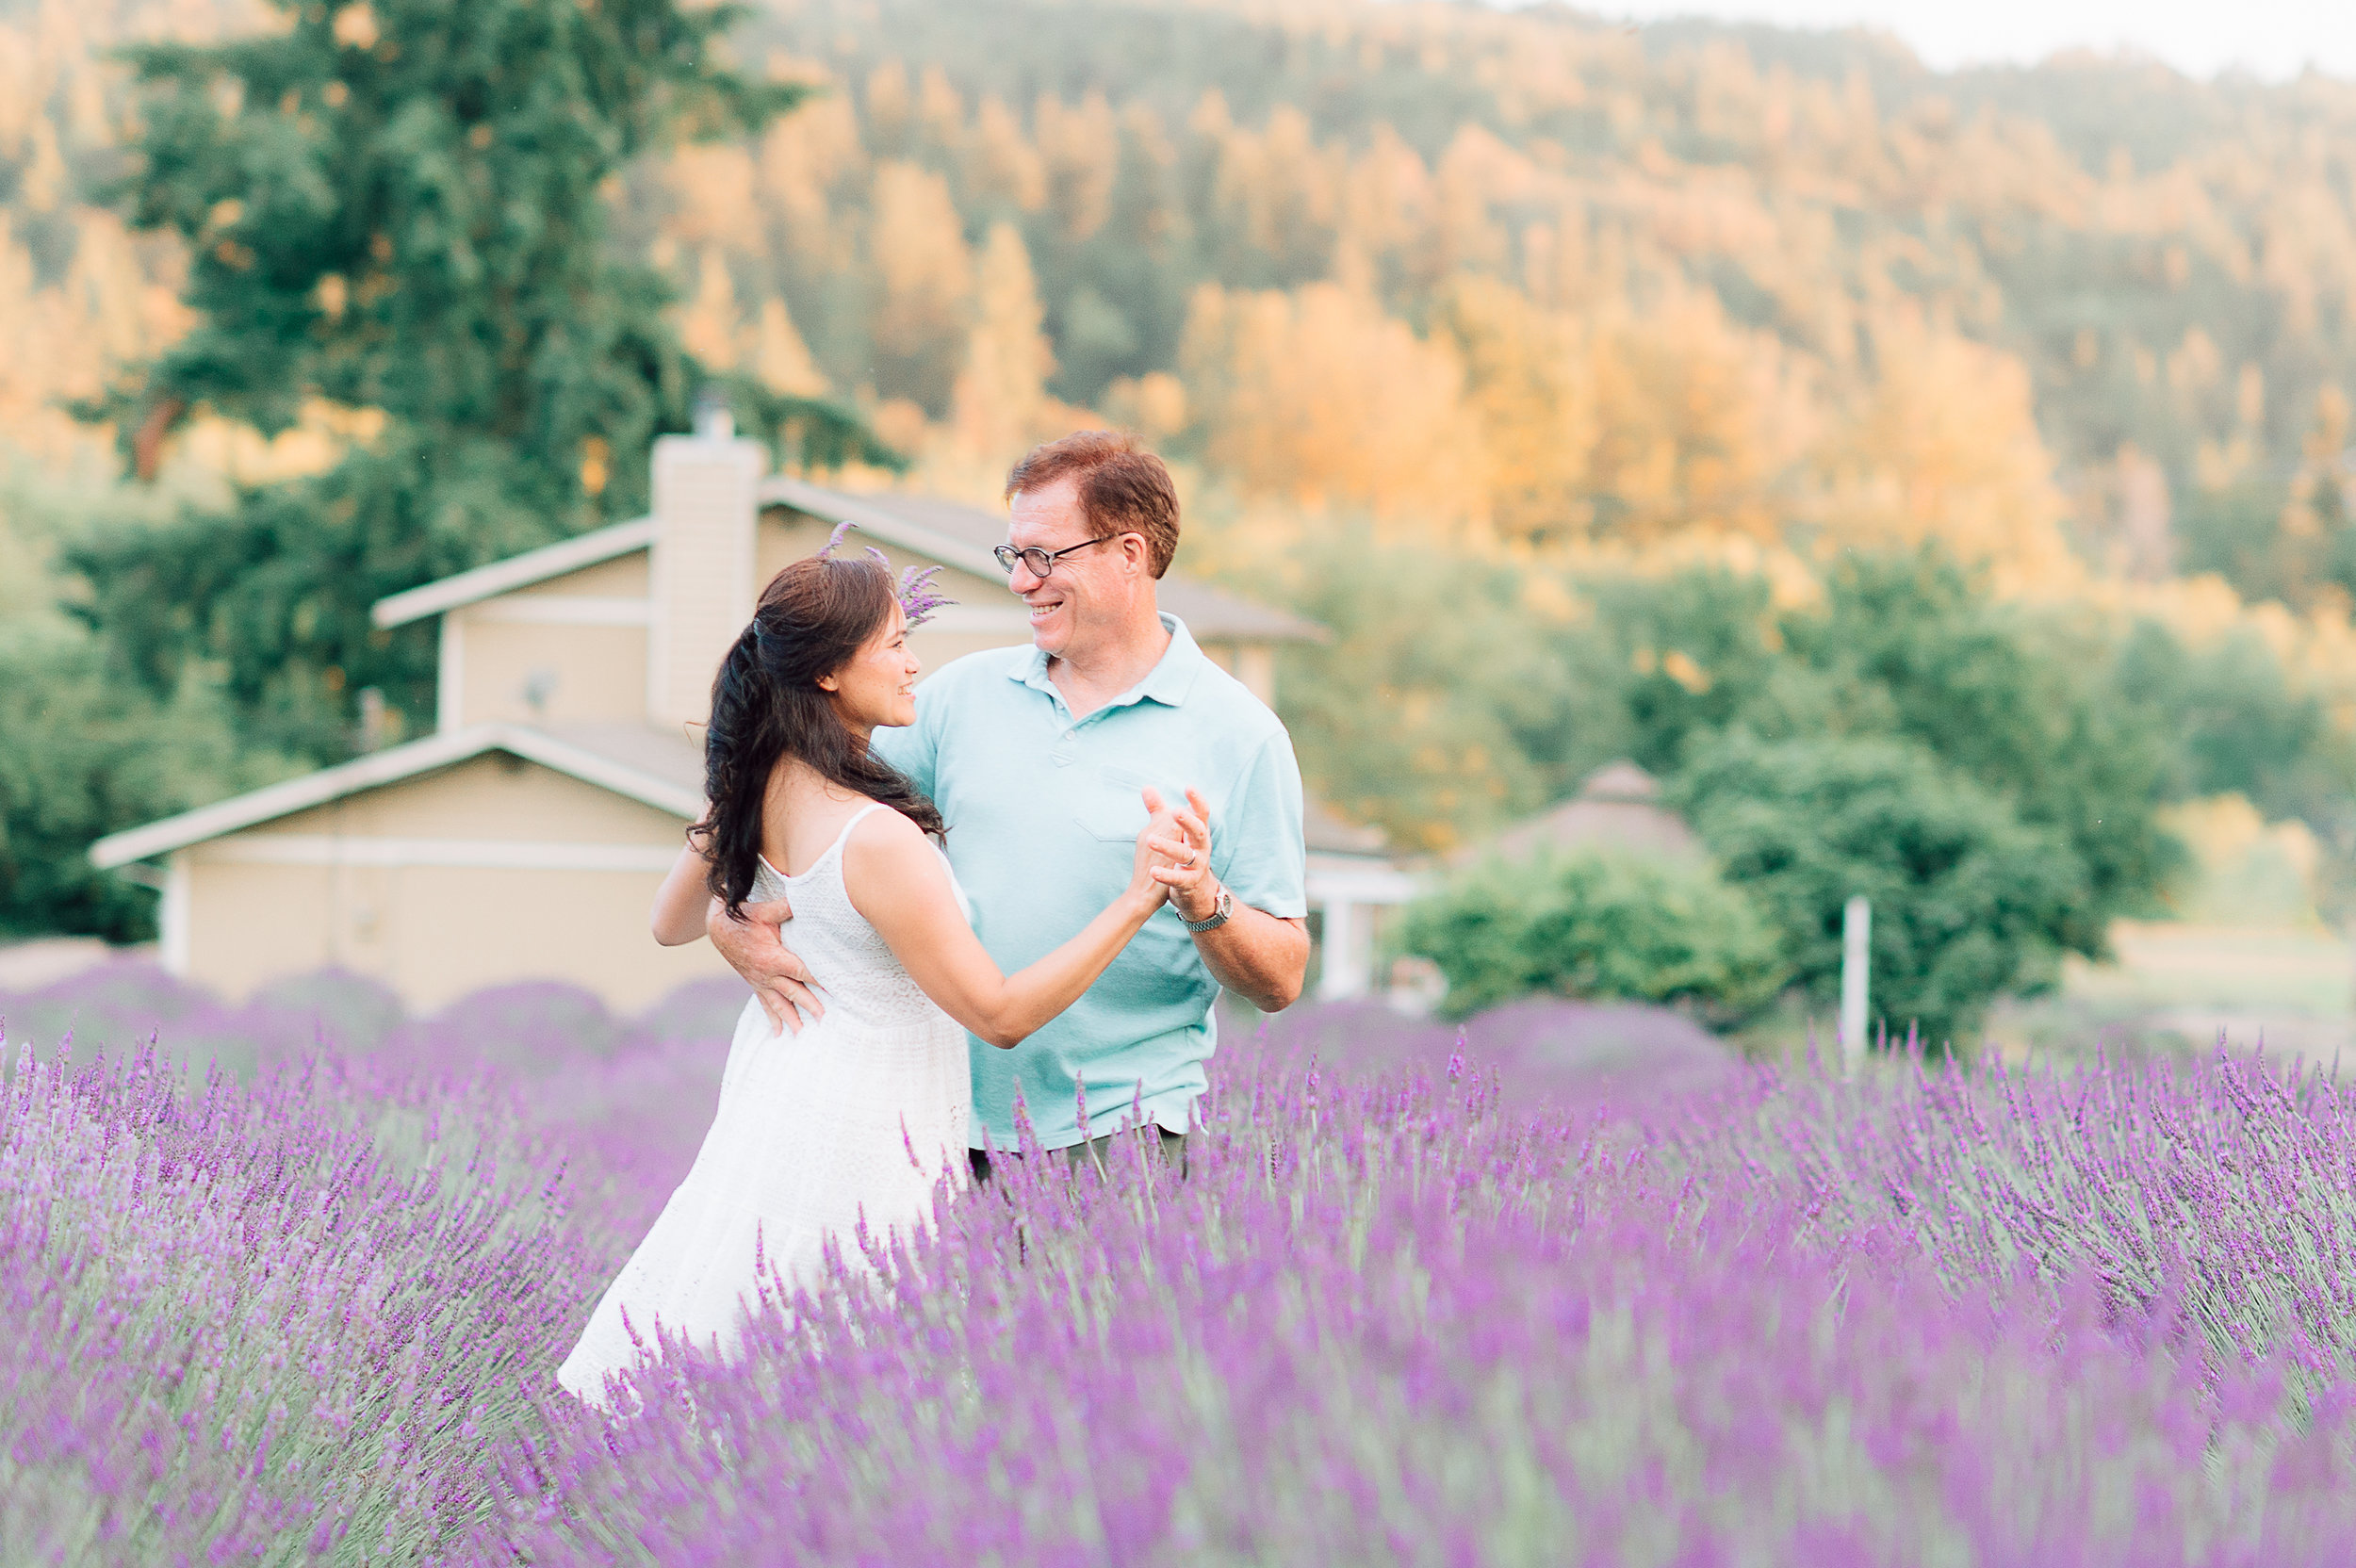 engagement_lavenderfield_youseephotography_LidiaOtto (60).jpg